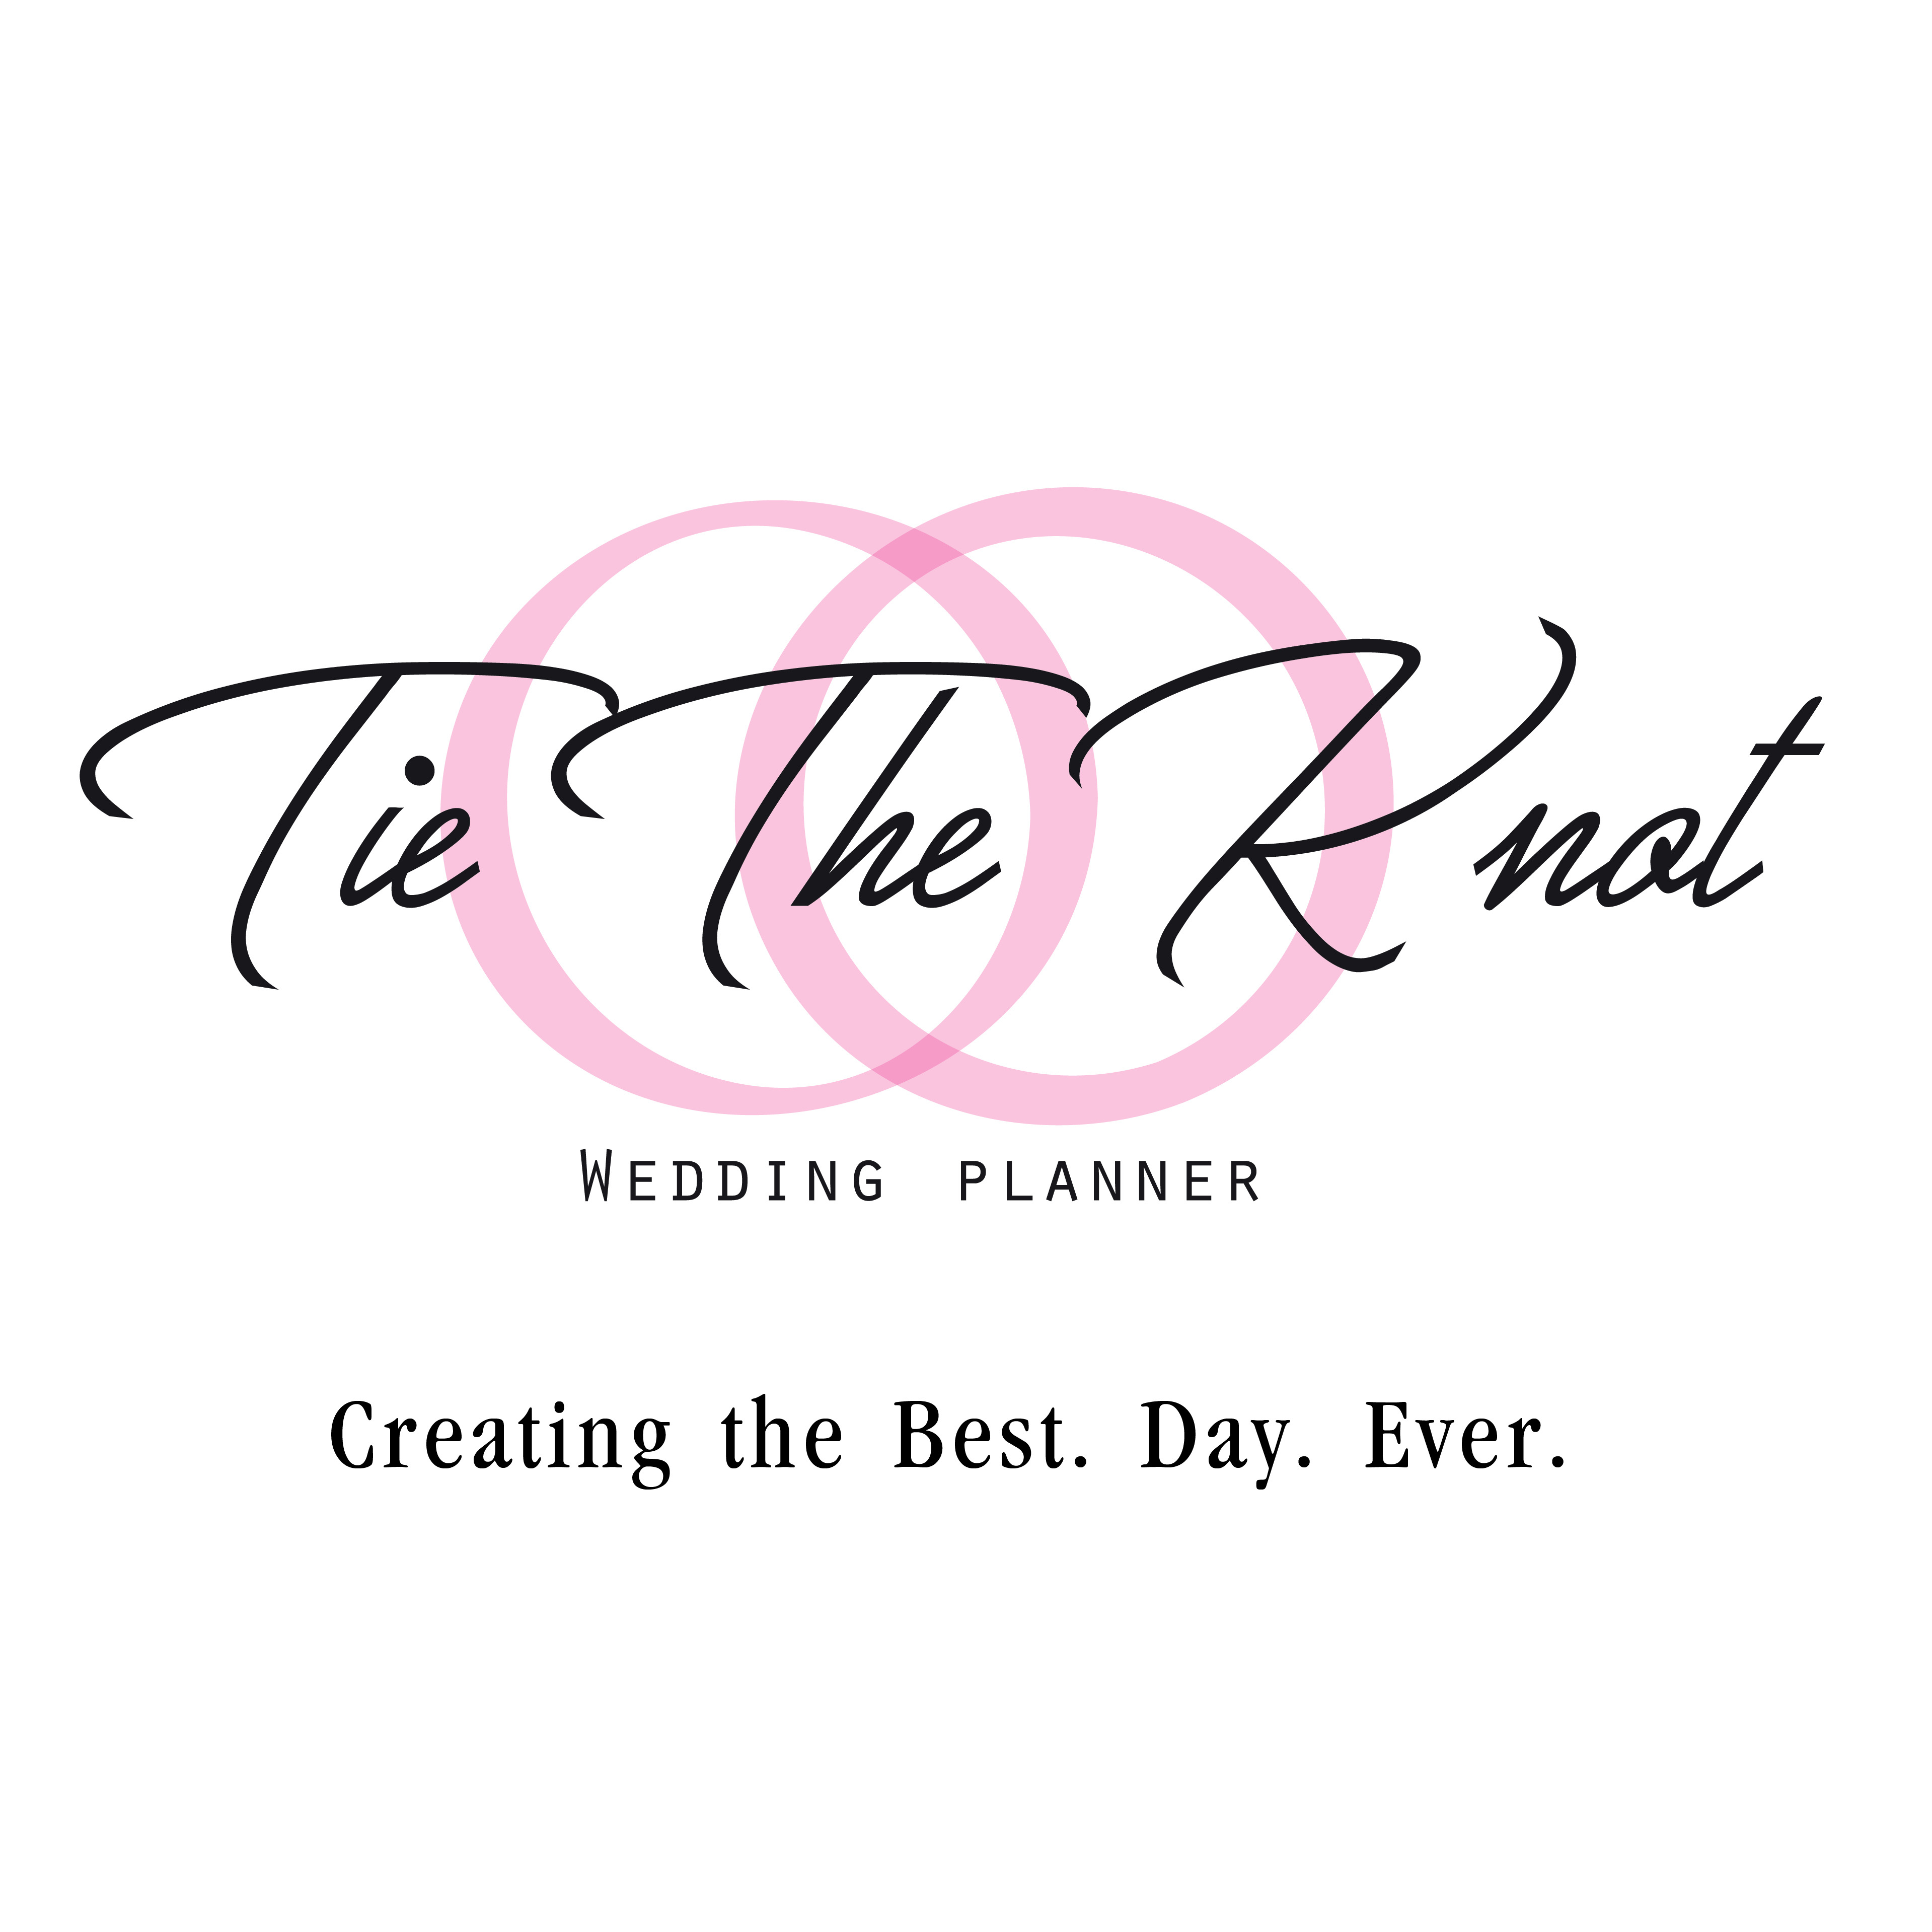 Tie The Knot Wedding Planner